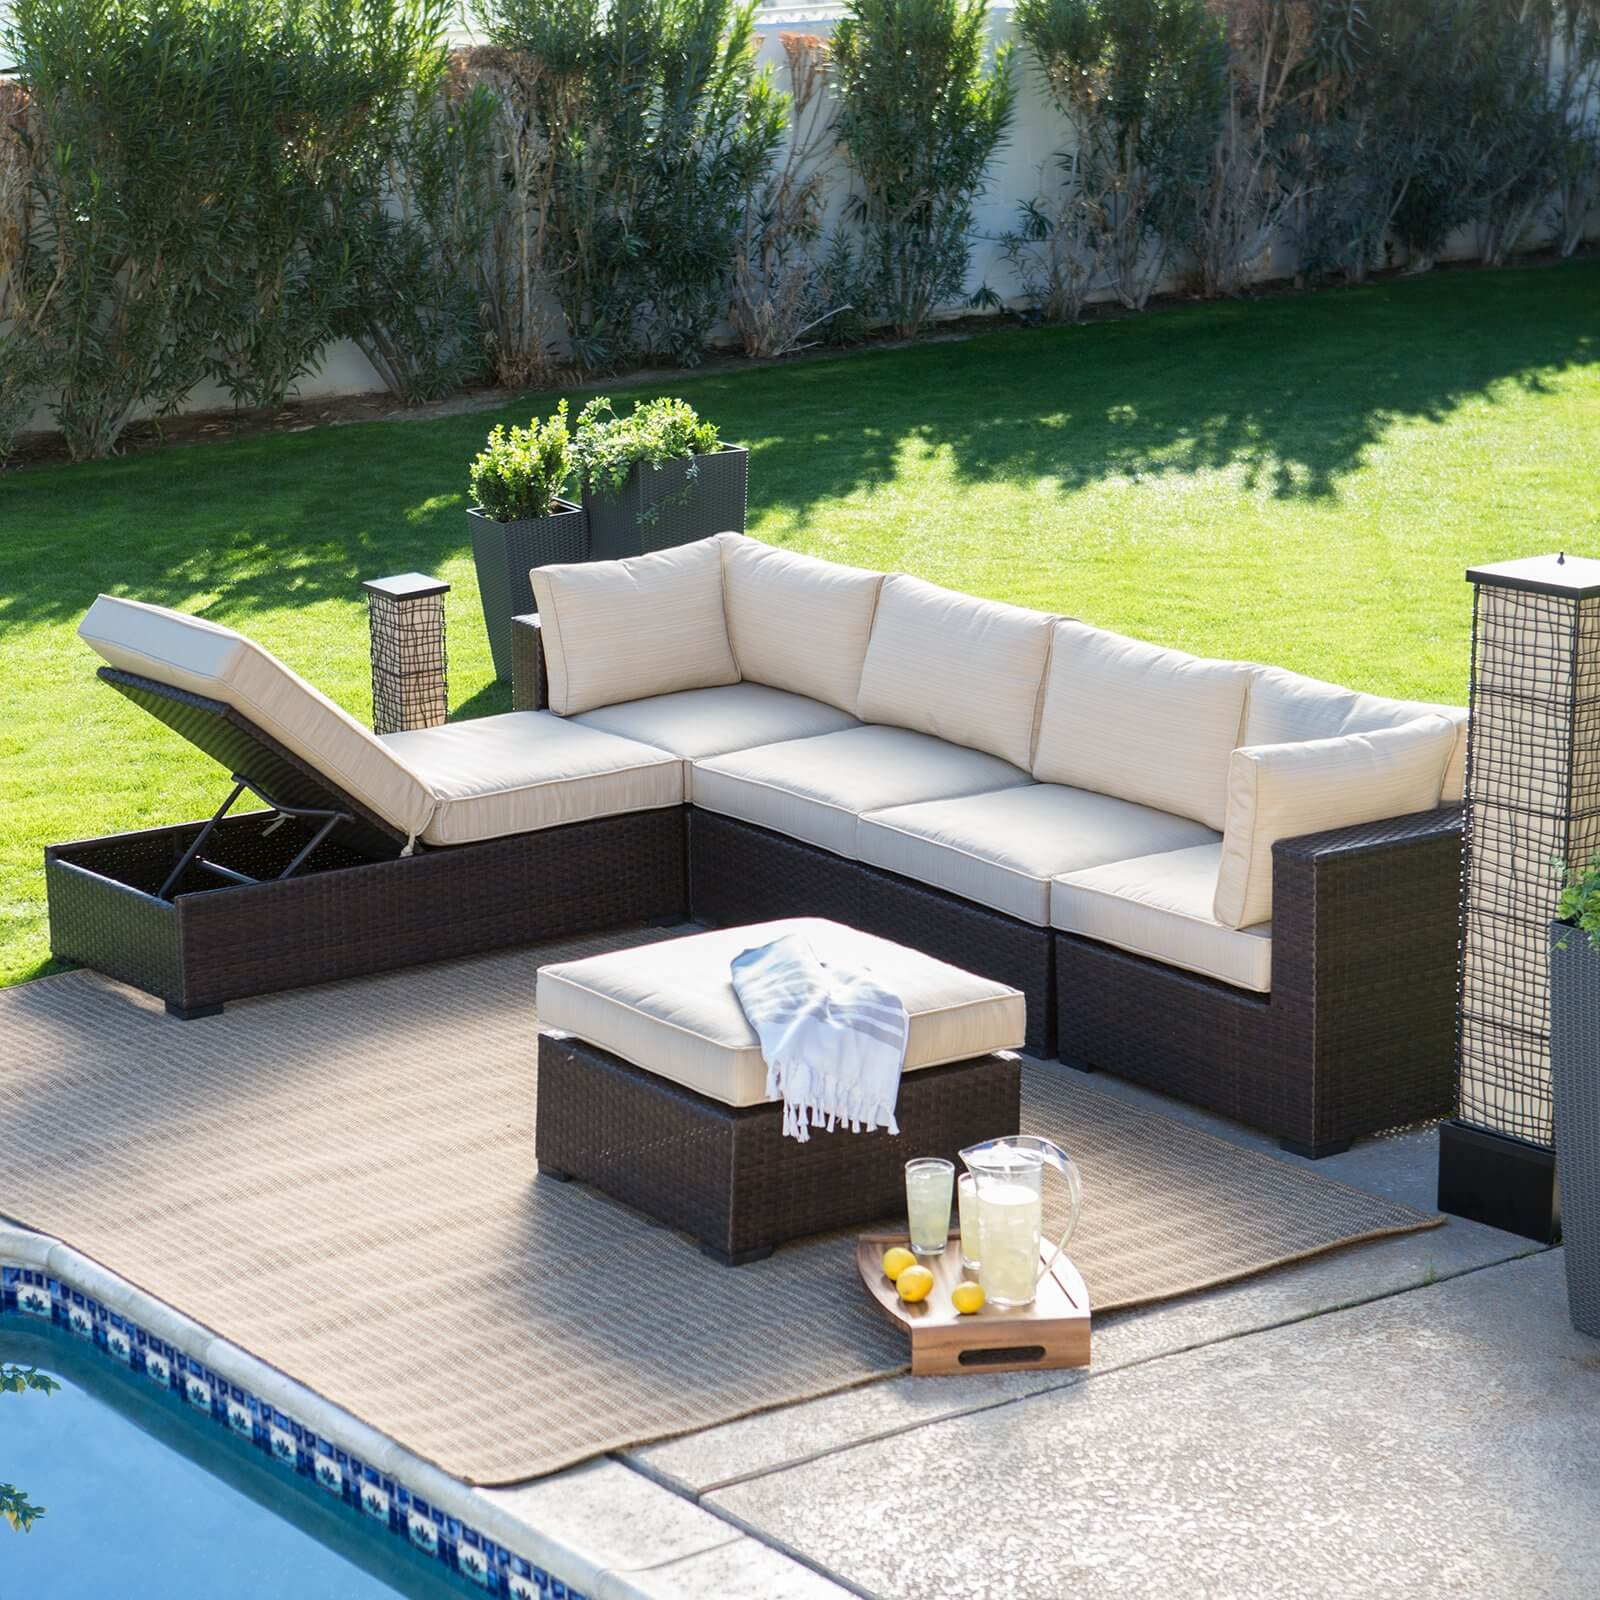 Lengthy patio sectional features standard sofa shape, plus chaise lounge section with movable backrest, and ottoman section for variety of configurations.